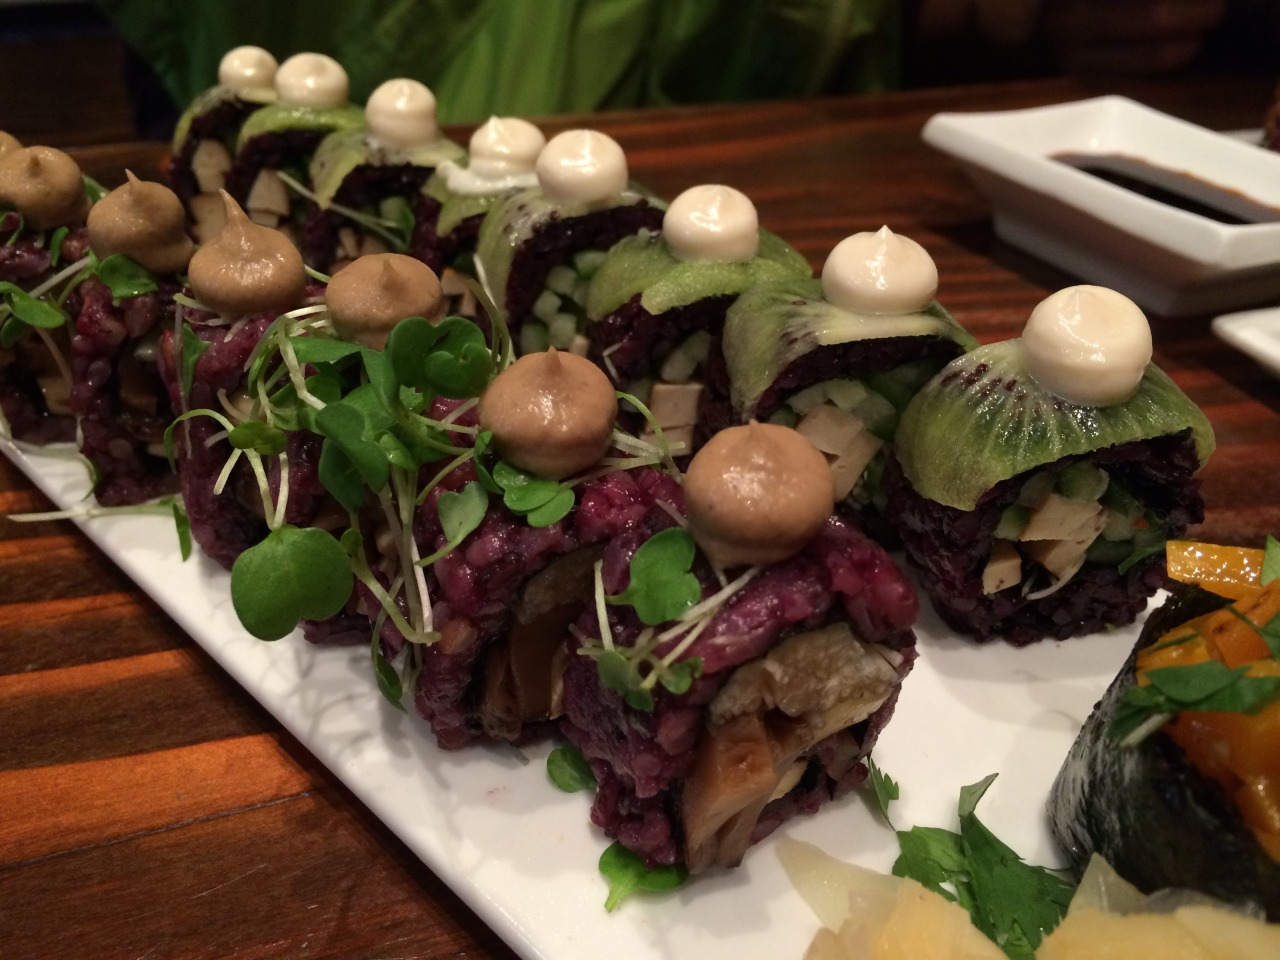 Crunch N' Munch Roll (right)- Black rice, Alfafa sprouts, English cucumber, Tofu, Kiwi Sauce: White Miso  Mighty Mushroom Roll (left)- Six-grain rice, Enoki, Tofu, Shiitake, Micro arugula Sauce: Shiitake Teriyaki